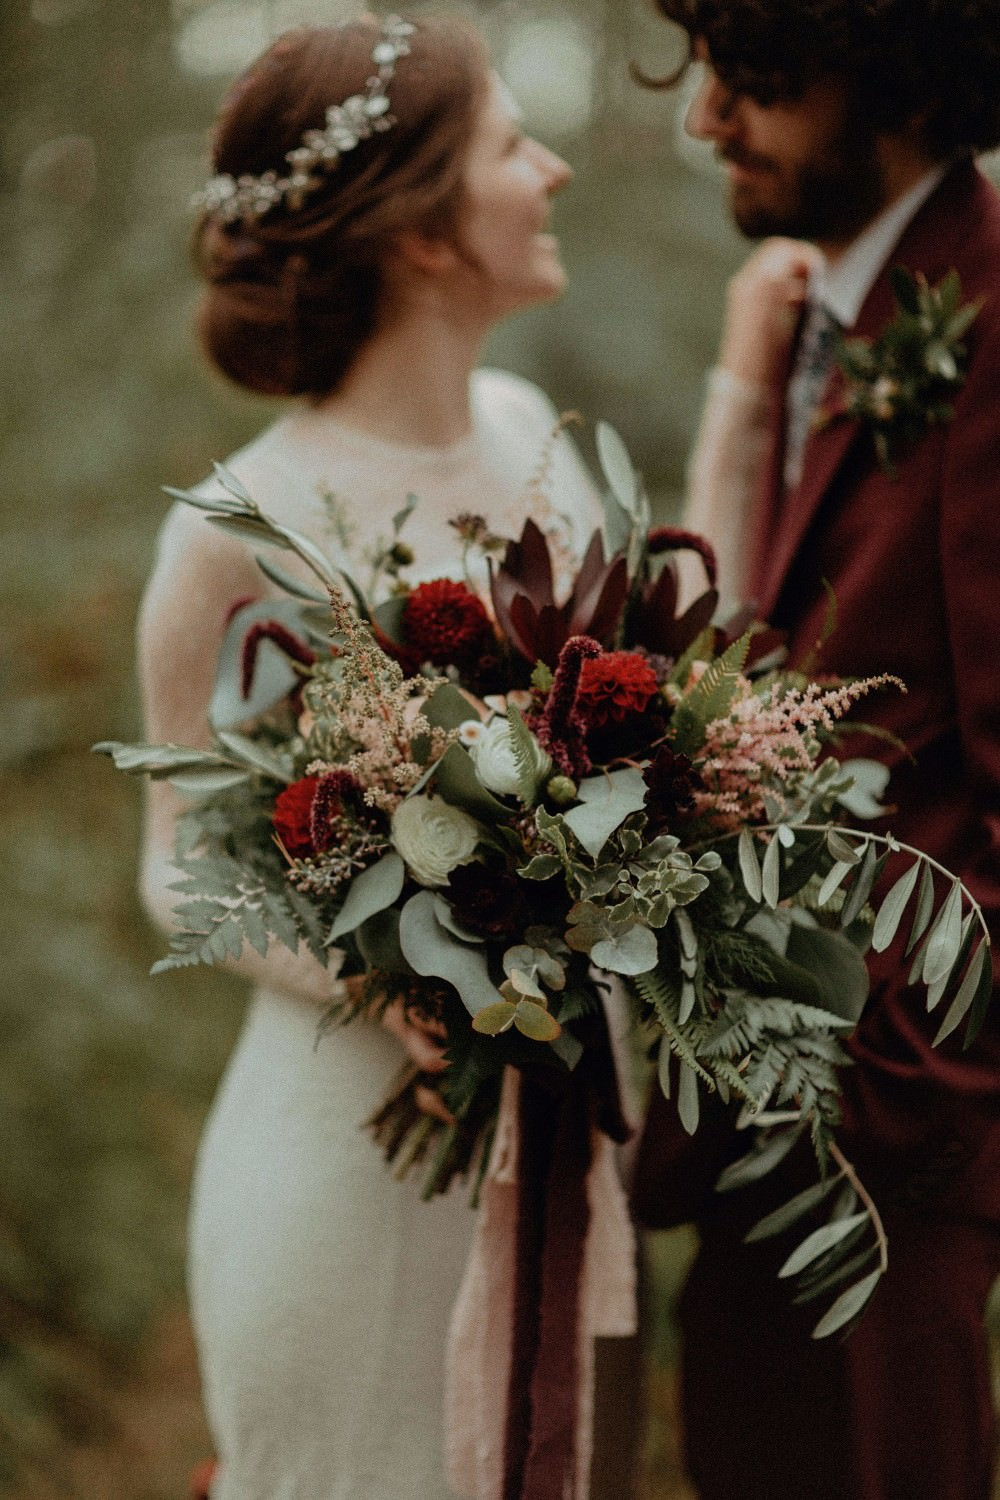 Bouquet Flowers Bride Bridal Burgundy Greenery Foliage Dahlia Astilbe Fern Ribbons Autumn Dark Red Wedding Belle Art Photography